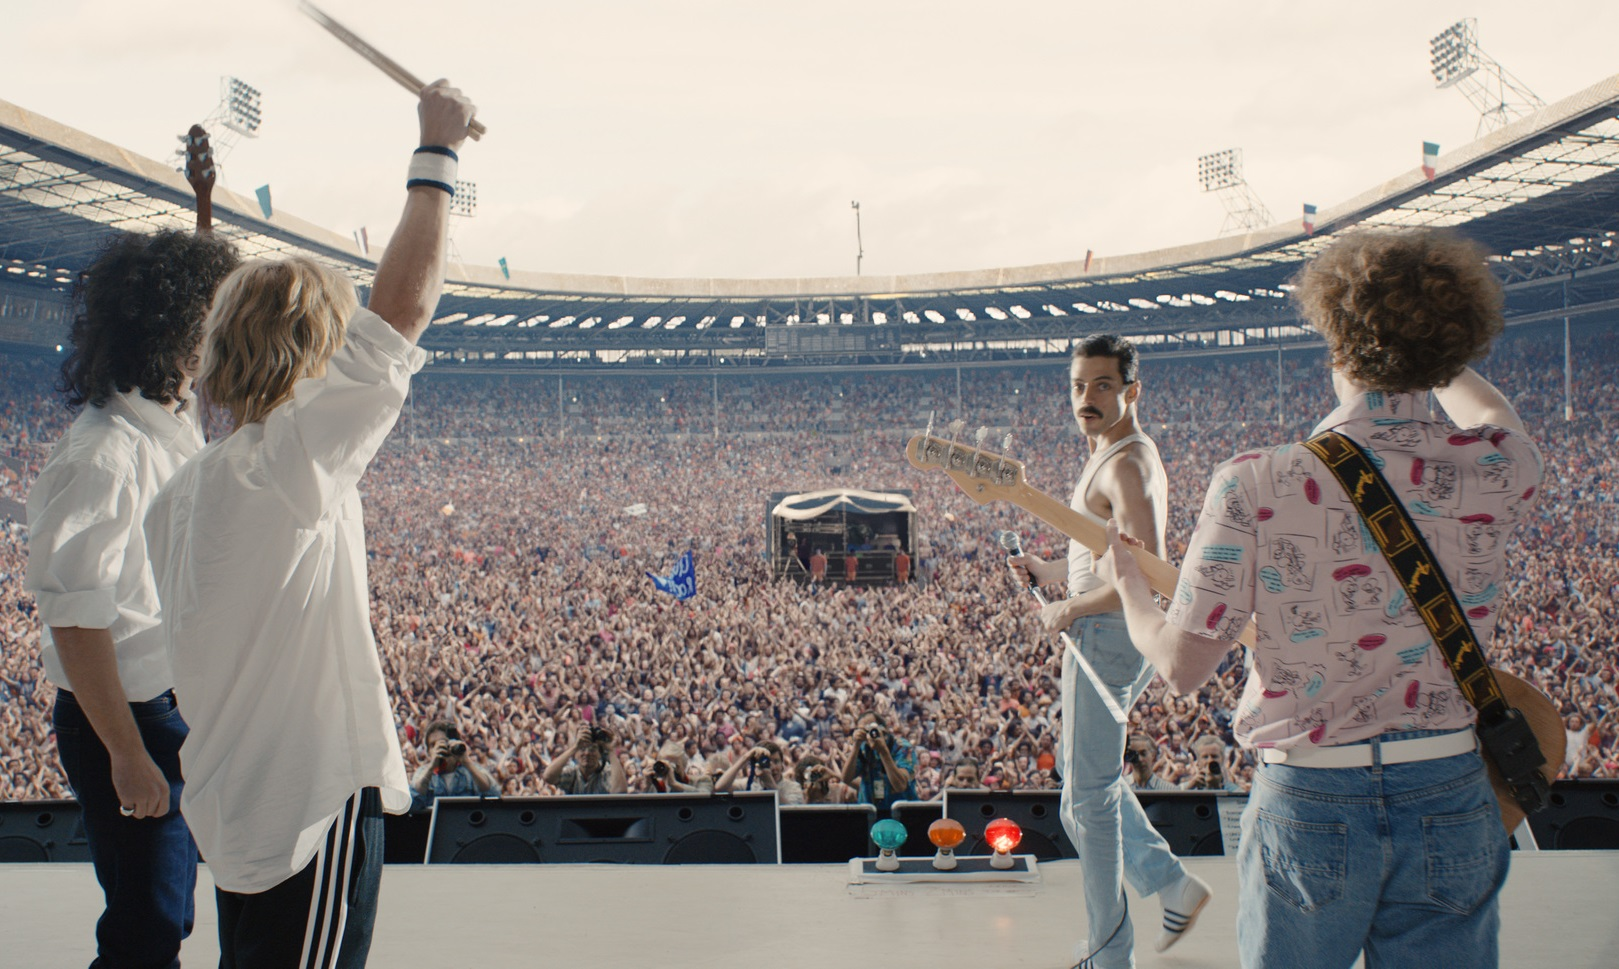 A Queensland Woman Has Broken The World Record For 'Bohemian Rhapsody' Viewings